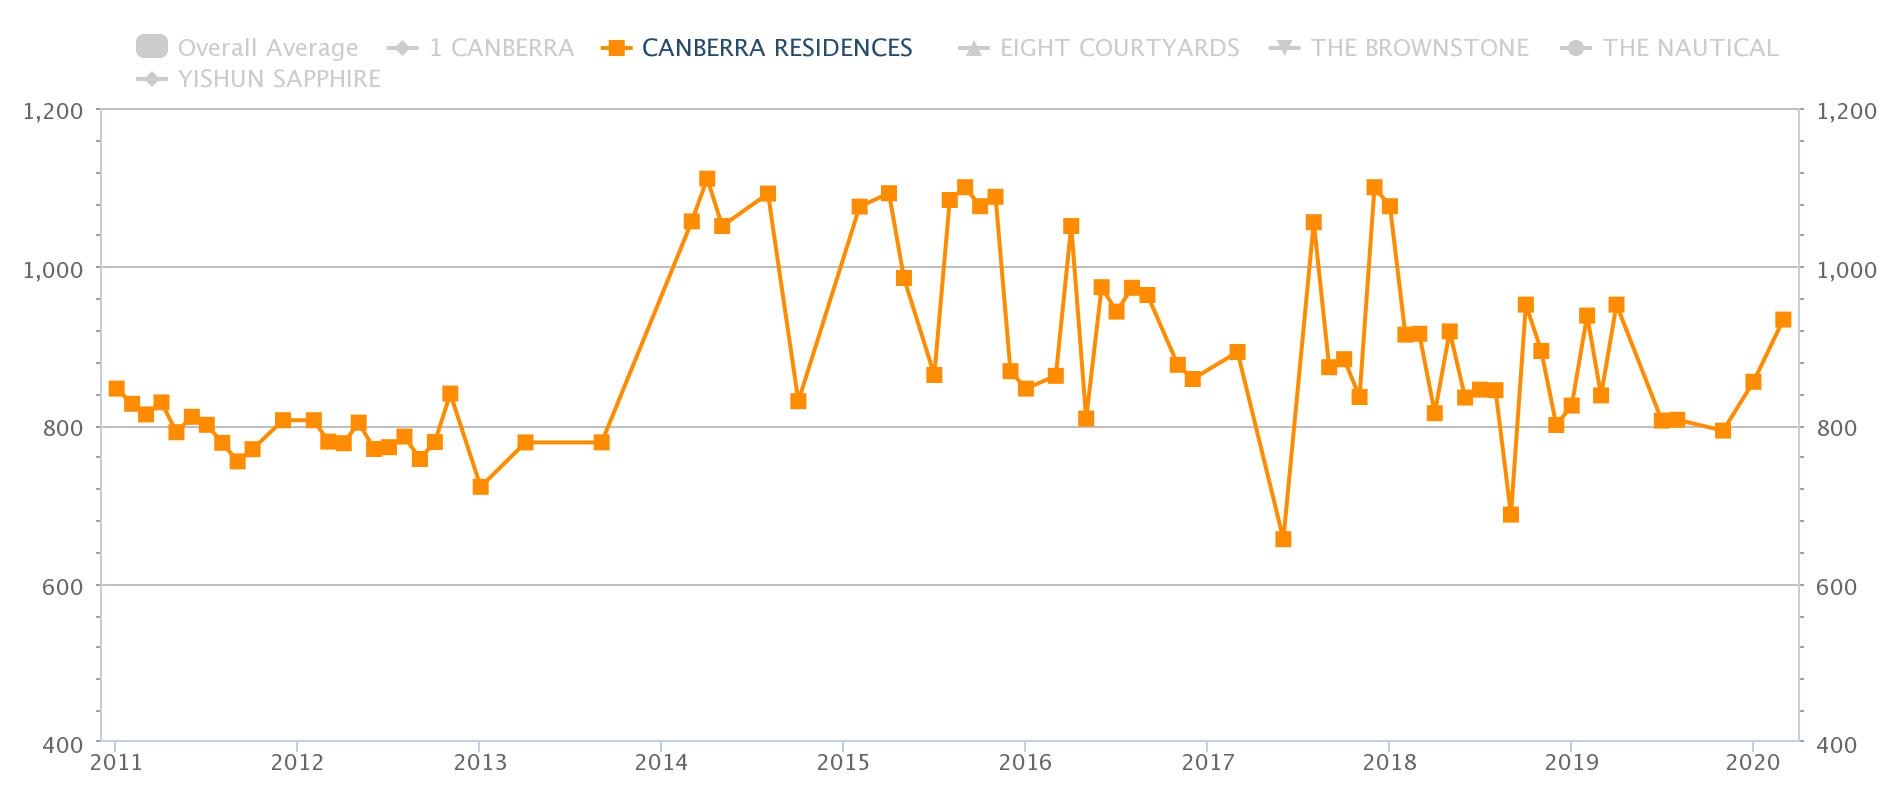 Canberra Residences Price Trend